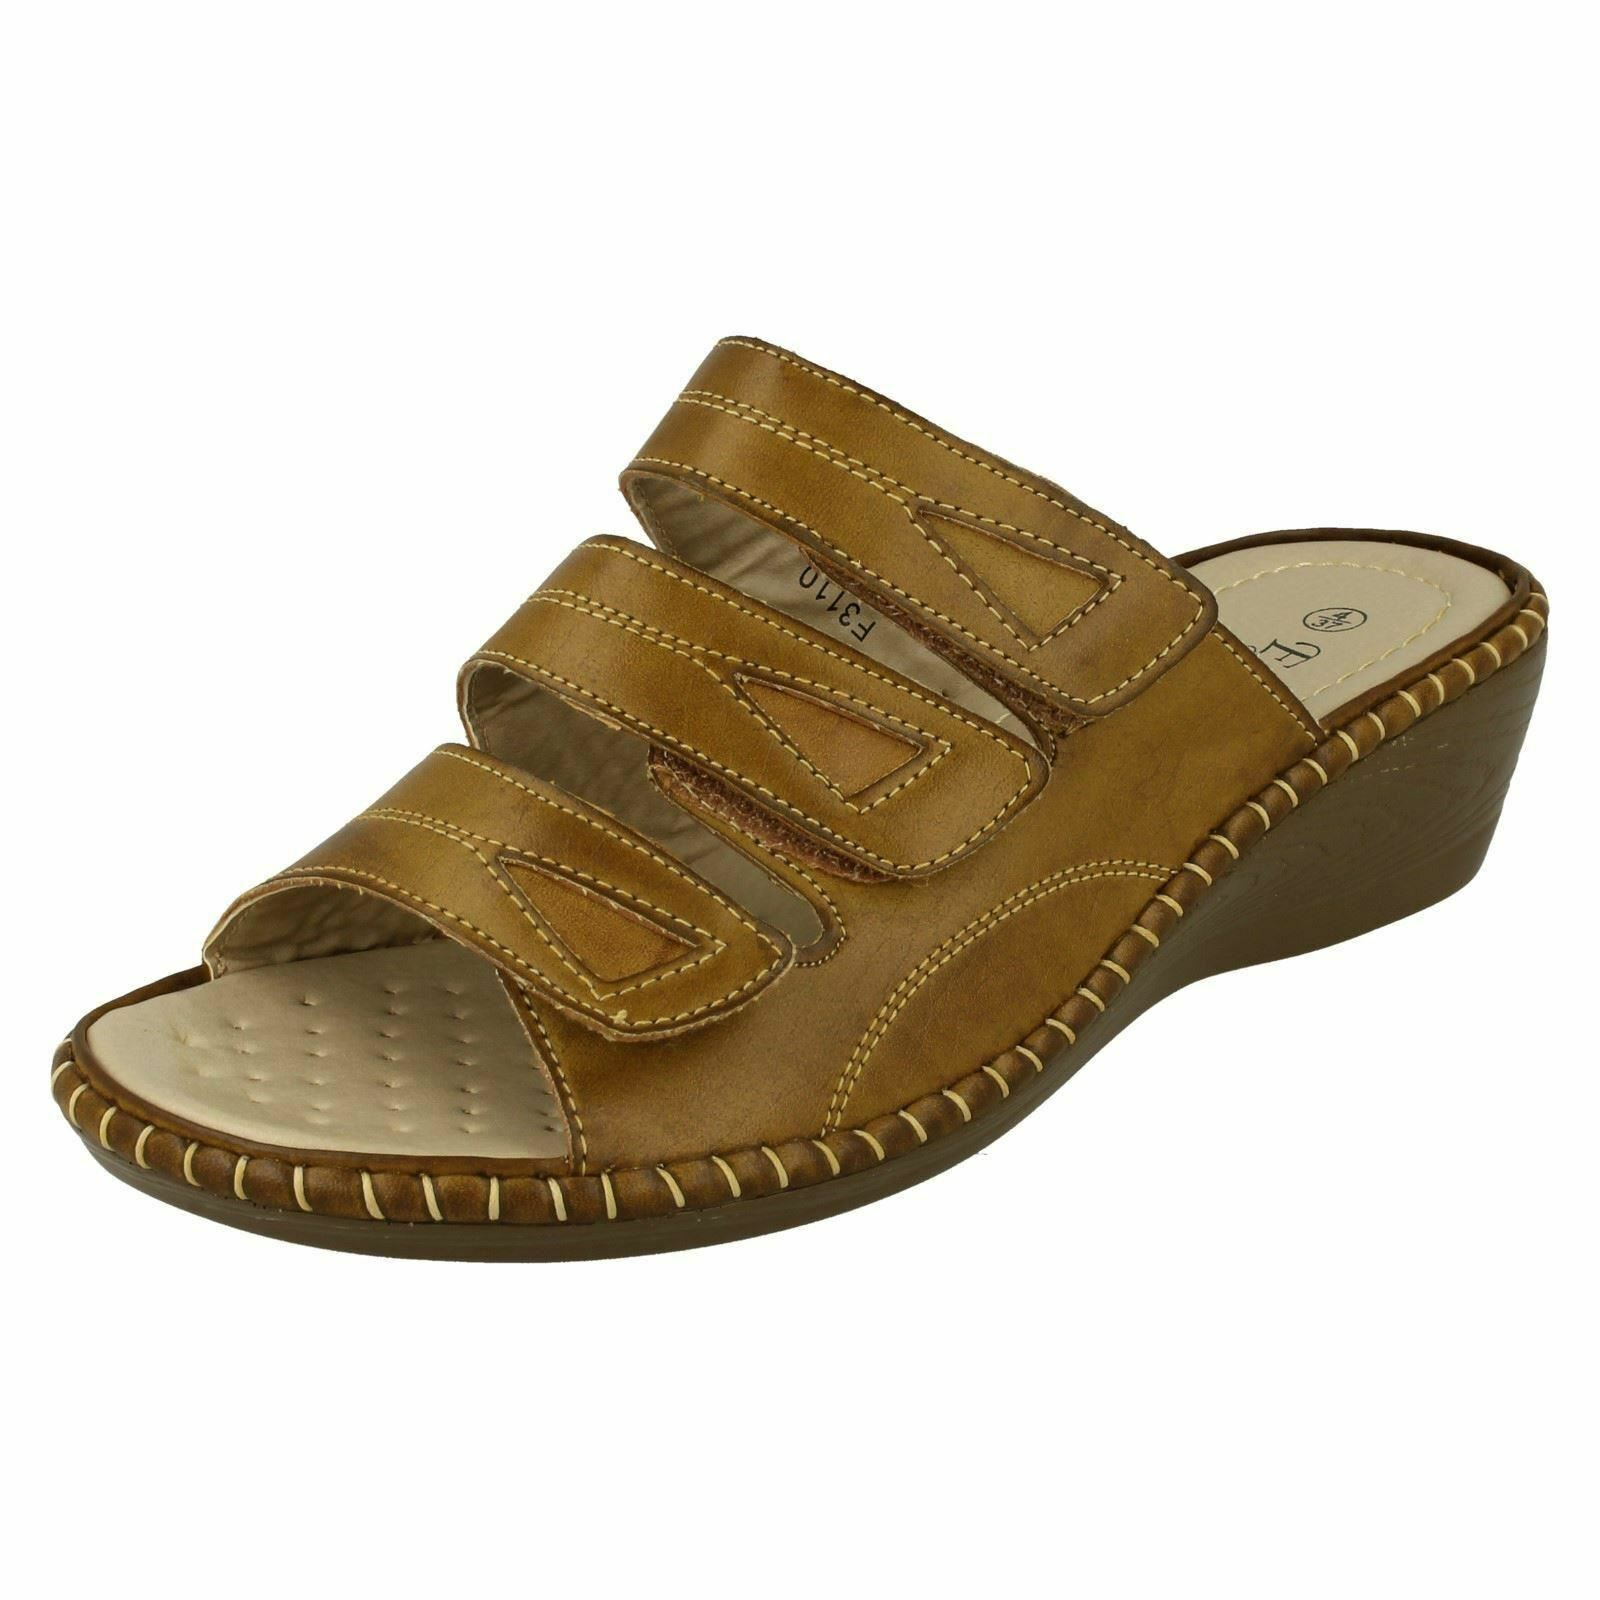 EAZE Closing F3110 Ladies Tan Riptape Closing EAZE Mule Sandal bd9587